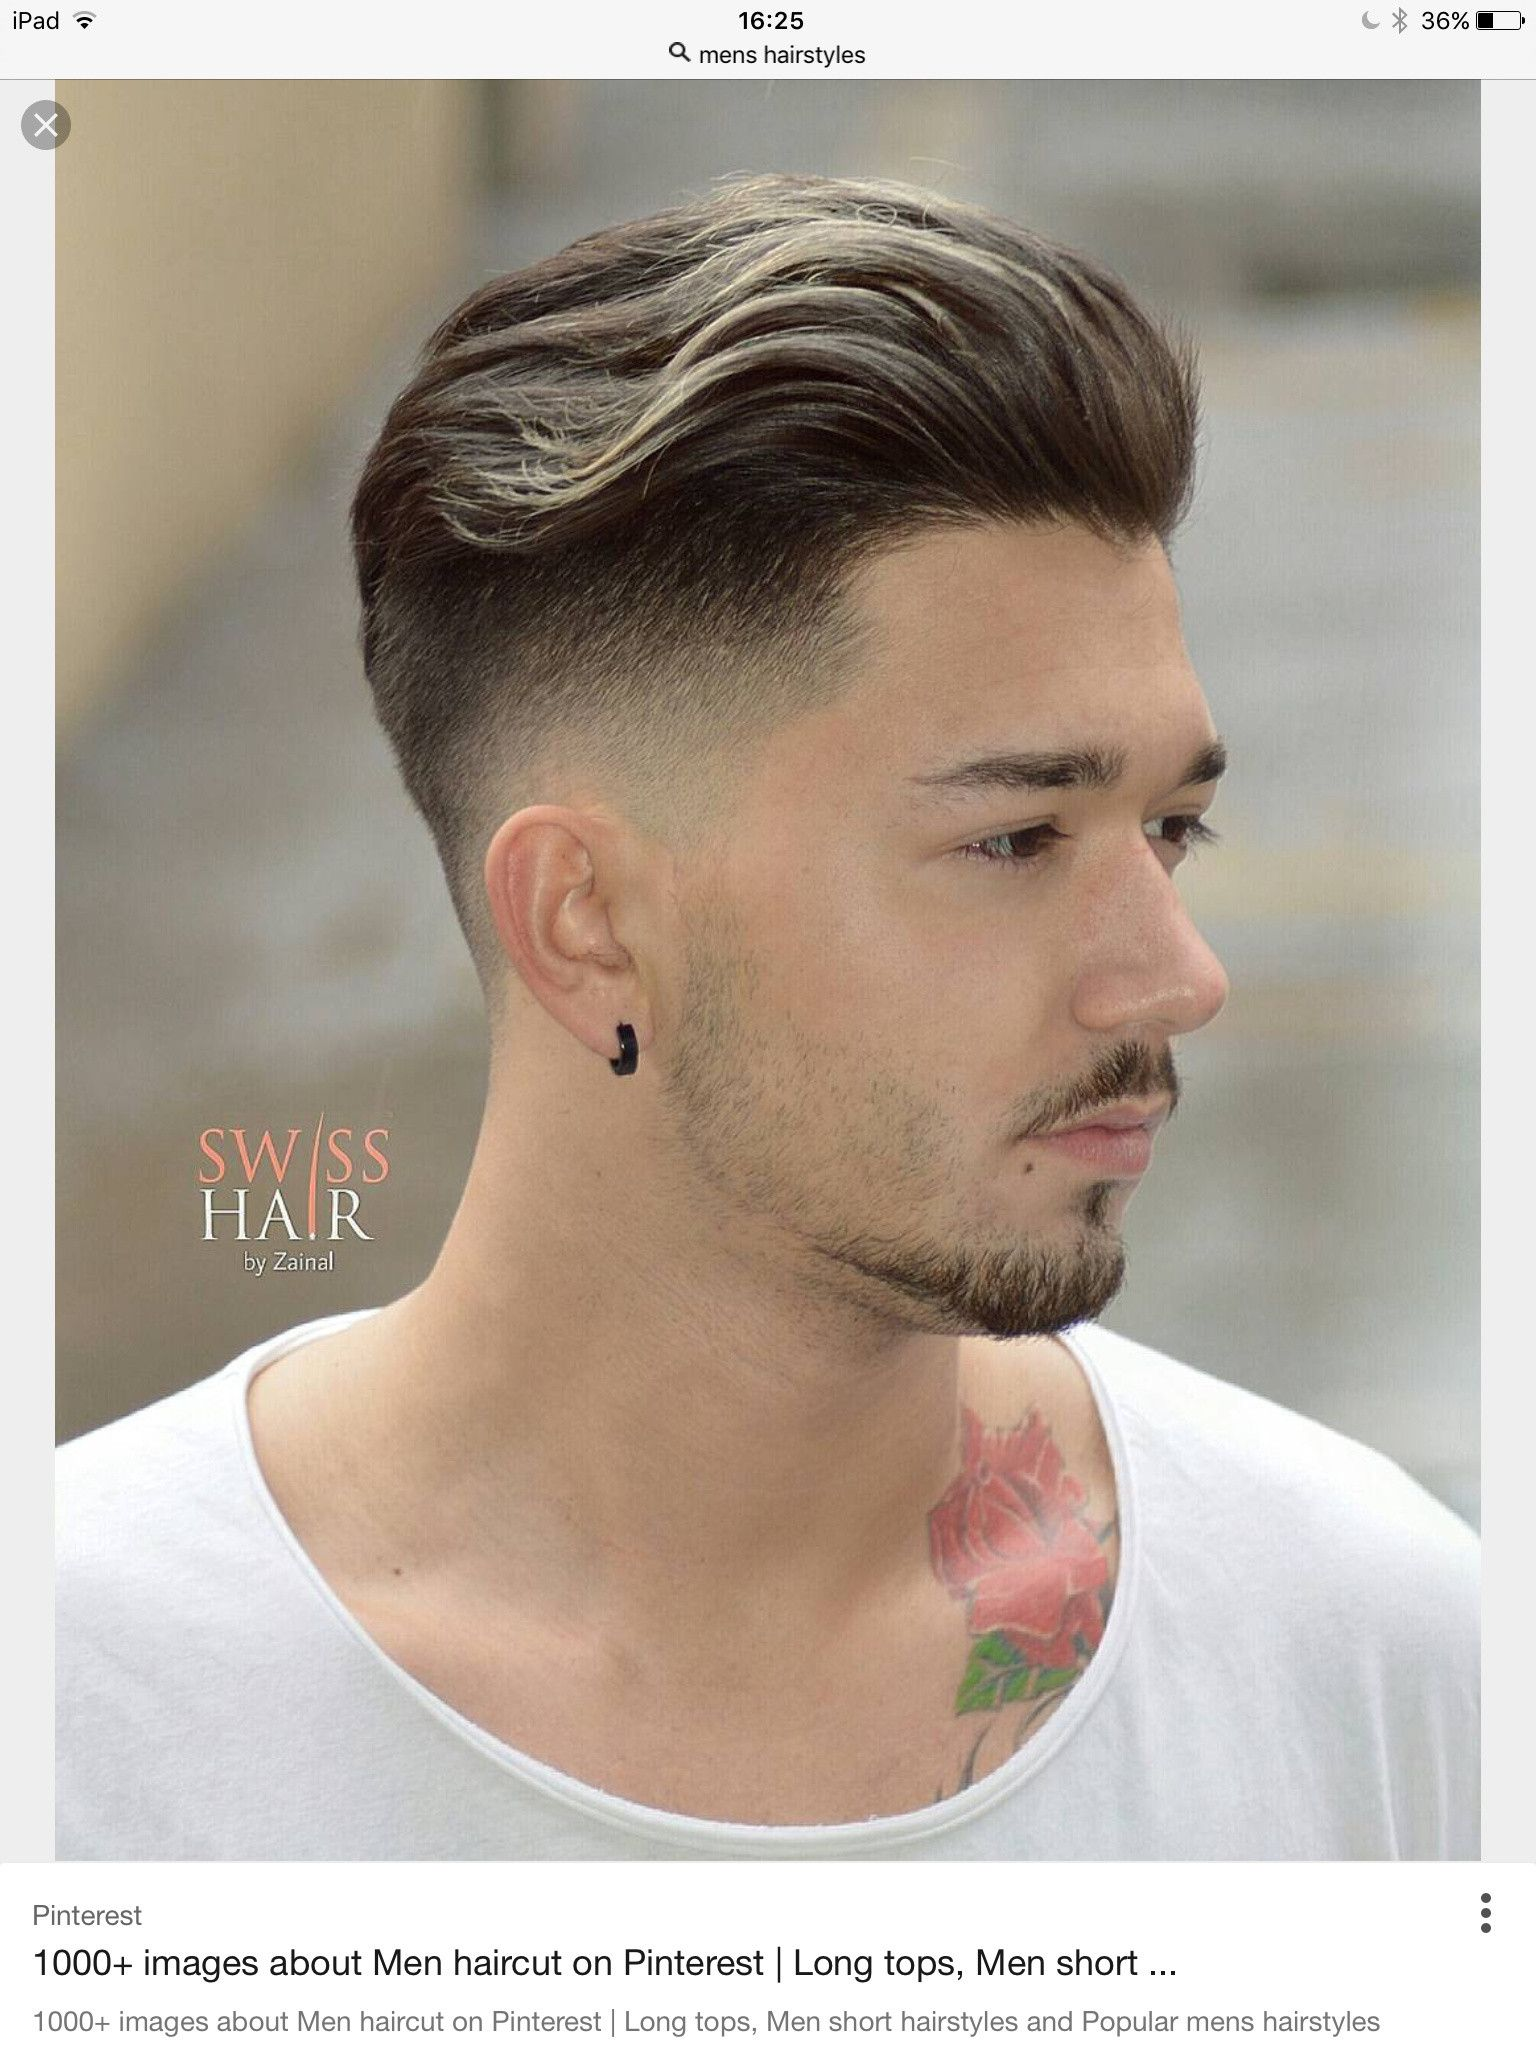 87 Inspirational Mexican Haircuts For Guys 2019 Thick Hair Styles Mens Hairstyles Short Slicked Back Hair